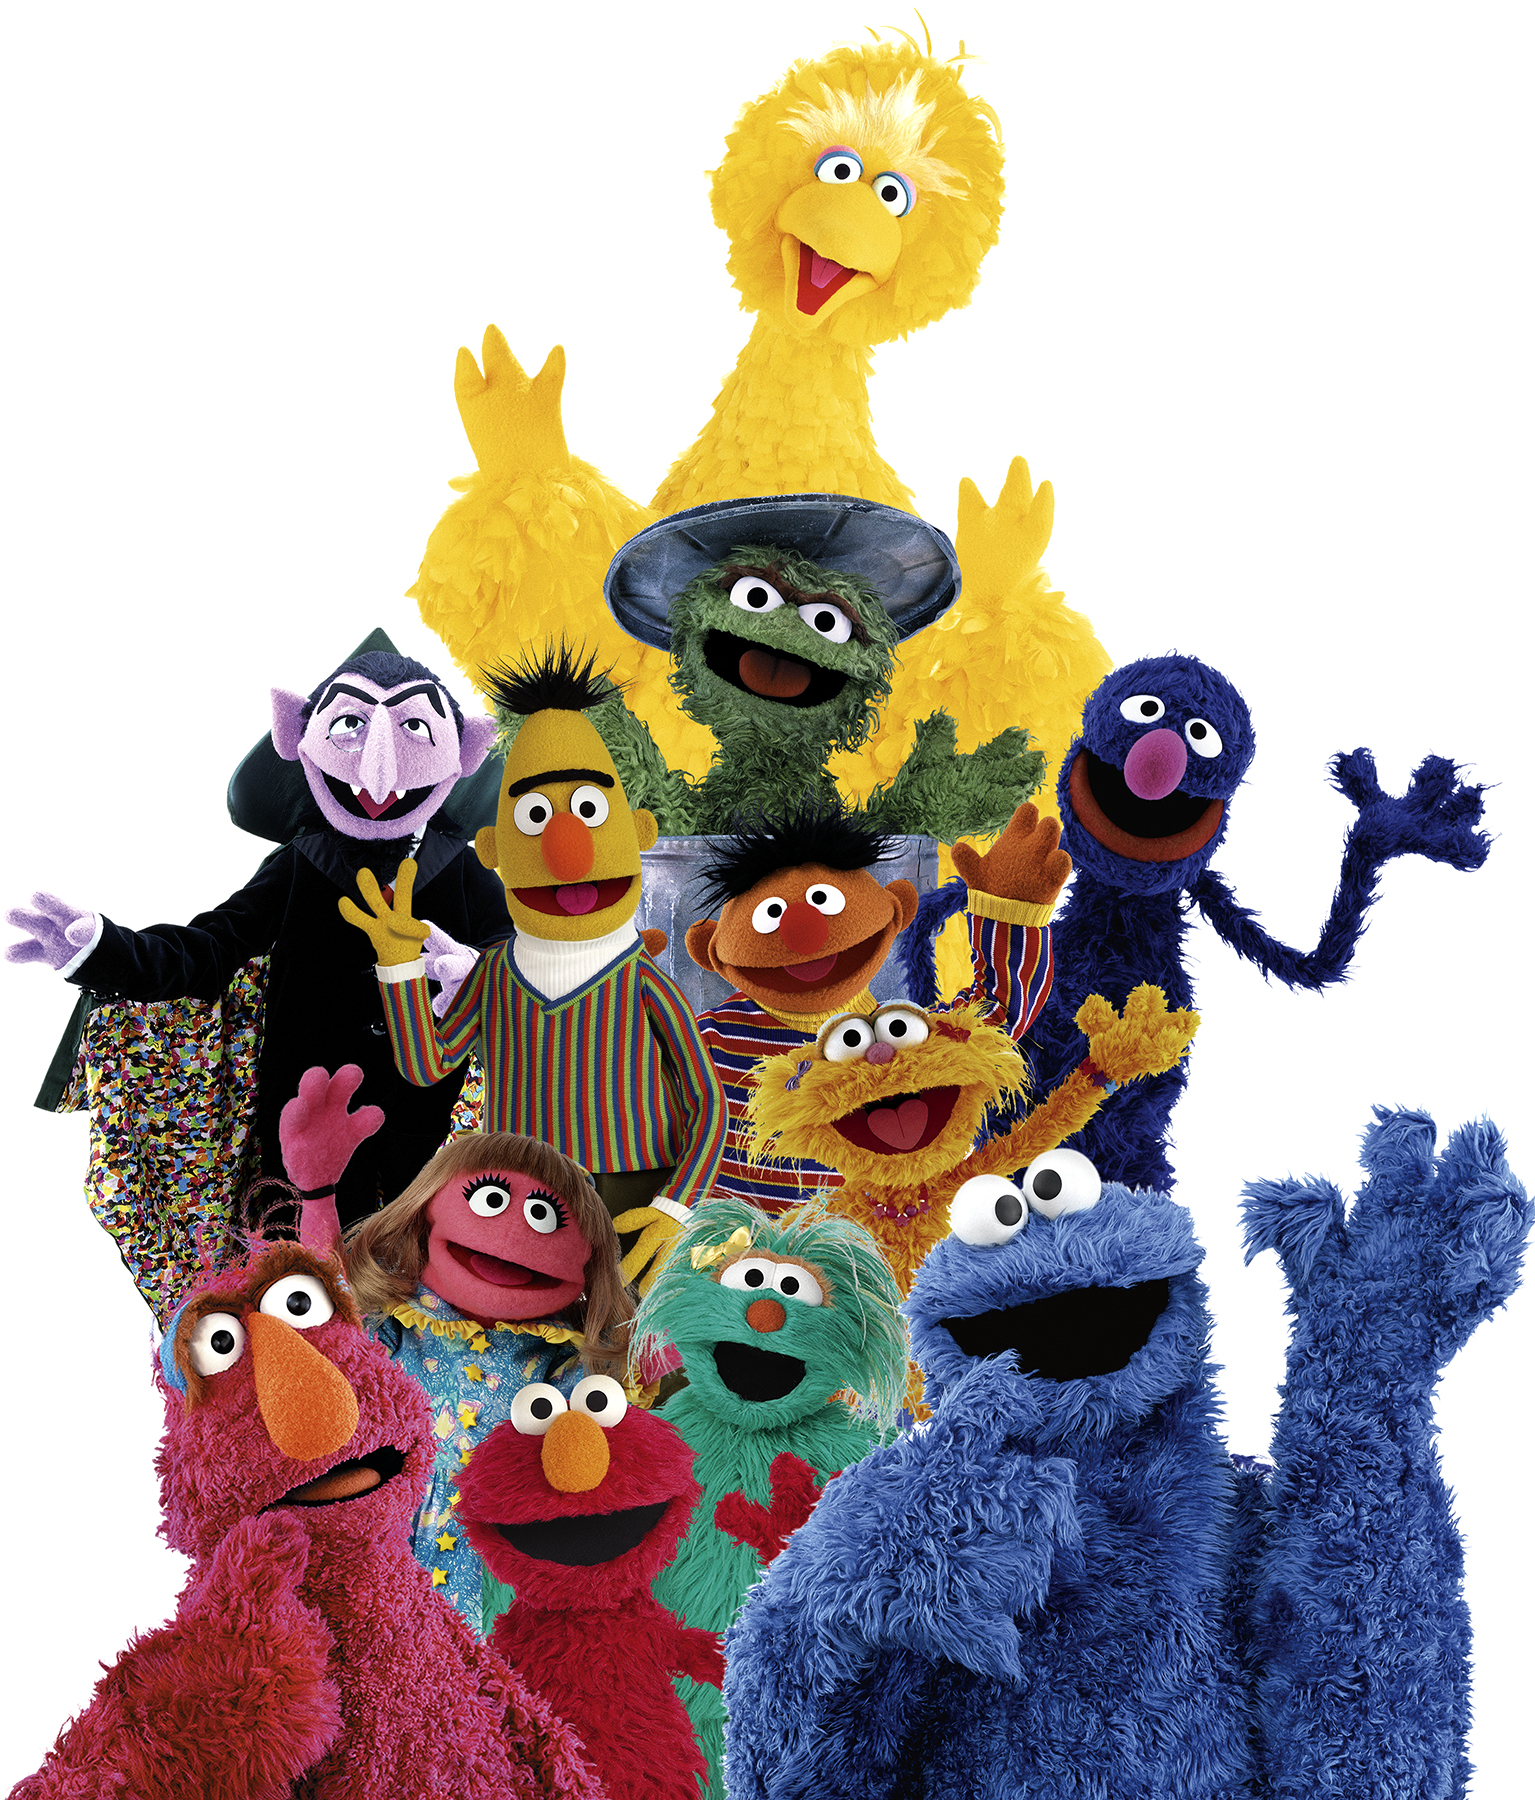 Sesame Street - Muppet Wiki